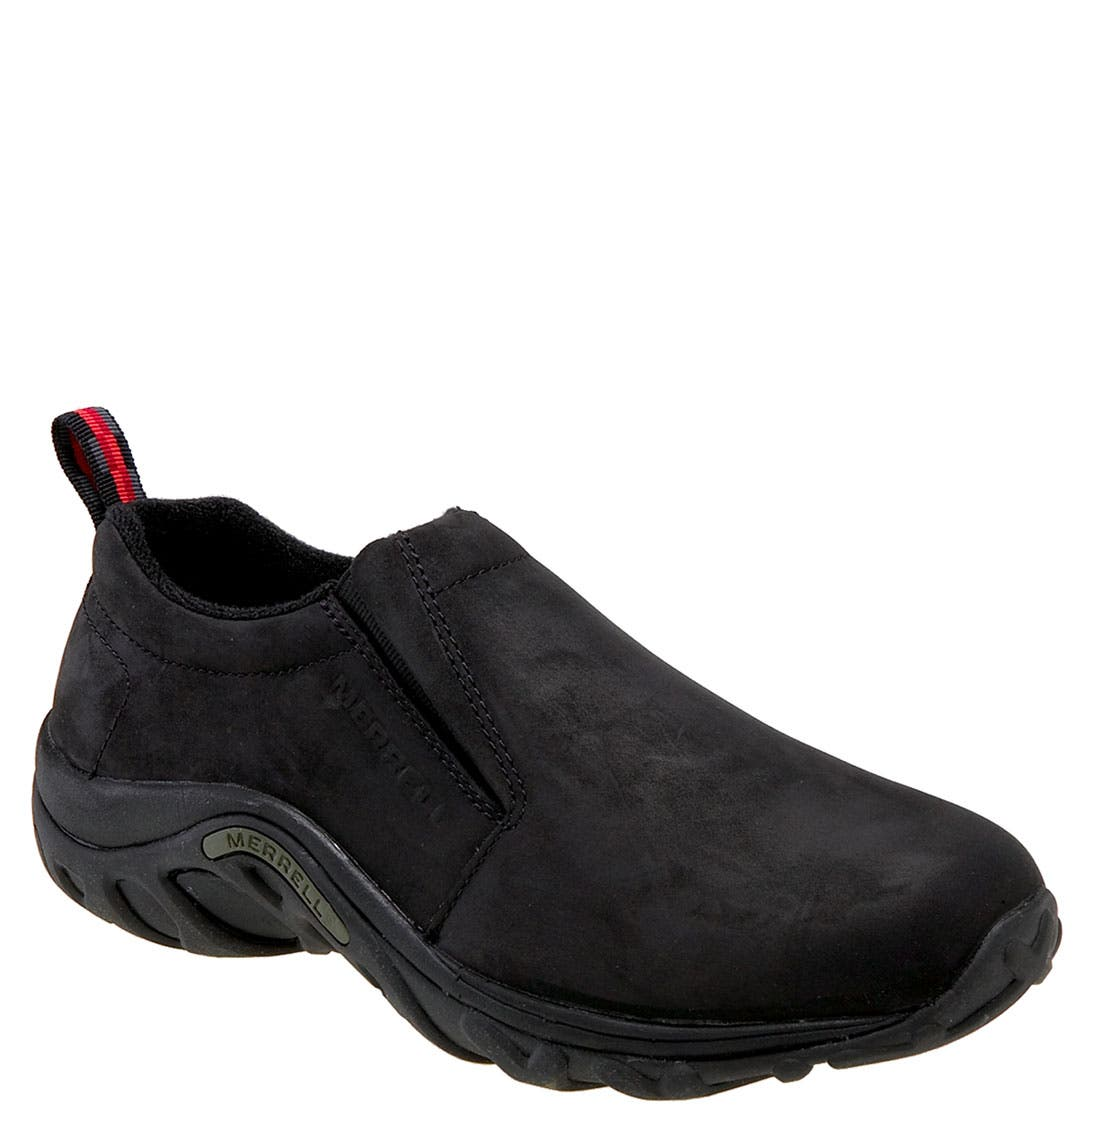 Alternate Image 1 Selected - Merrell 'Jungle Moc - Nubuck' Slip-On (Men)